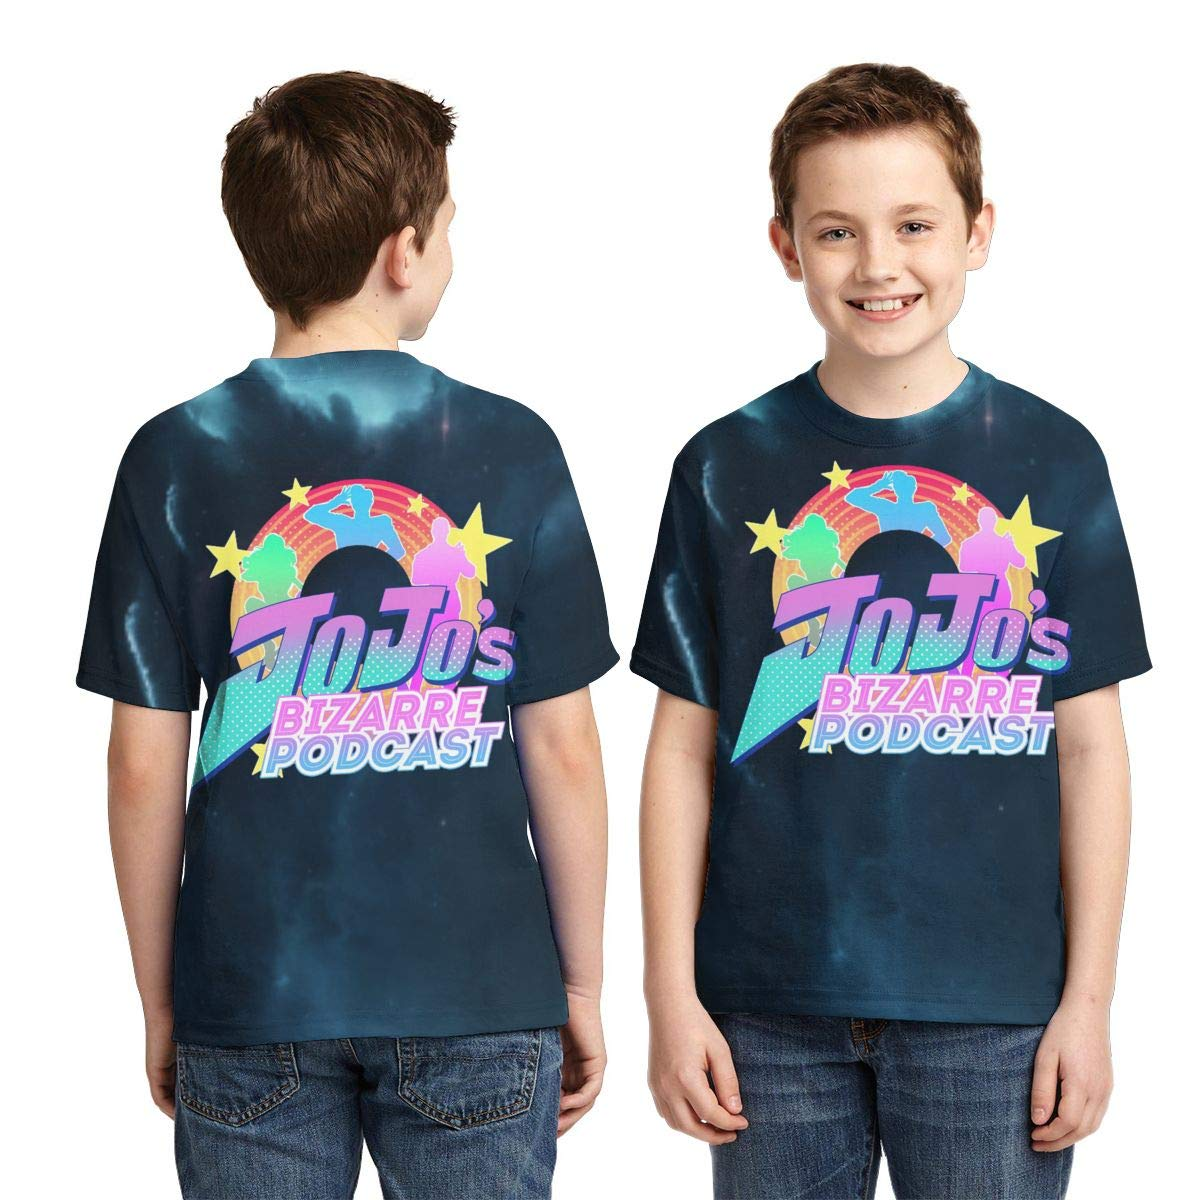 Zengqinglove Boys,Girls,Youth JoJos Bizarre Adventure Tee